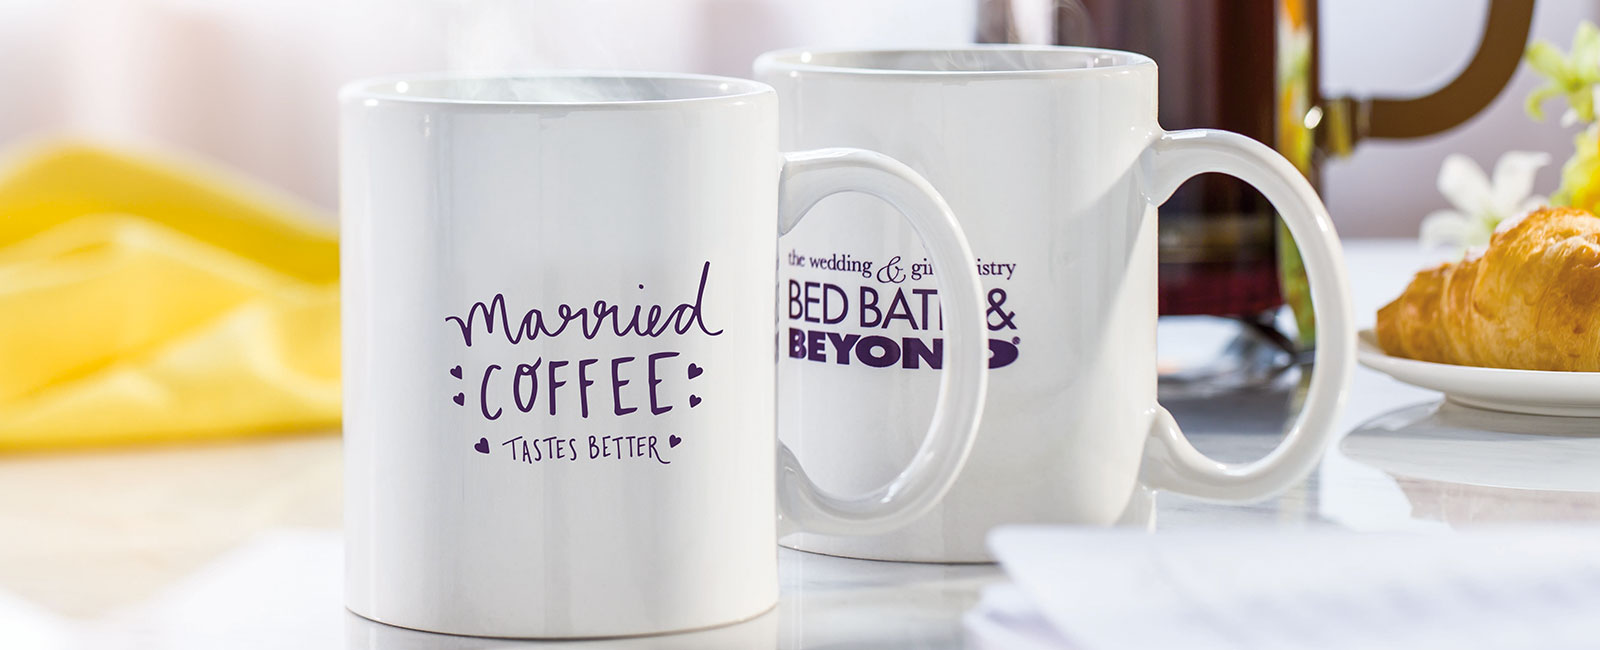 Best Wedding Gift Registry: Where To Register For Gifts